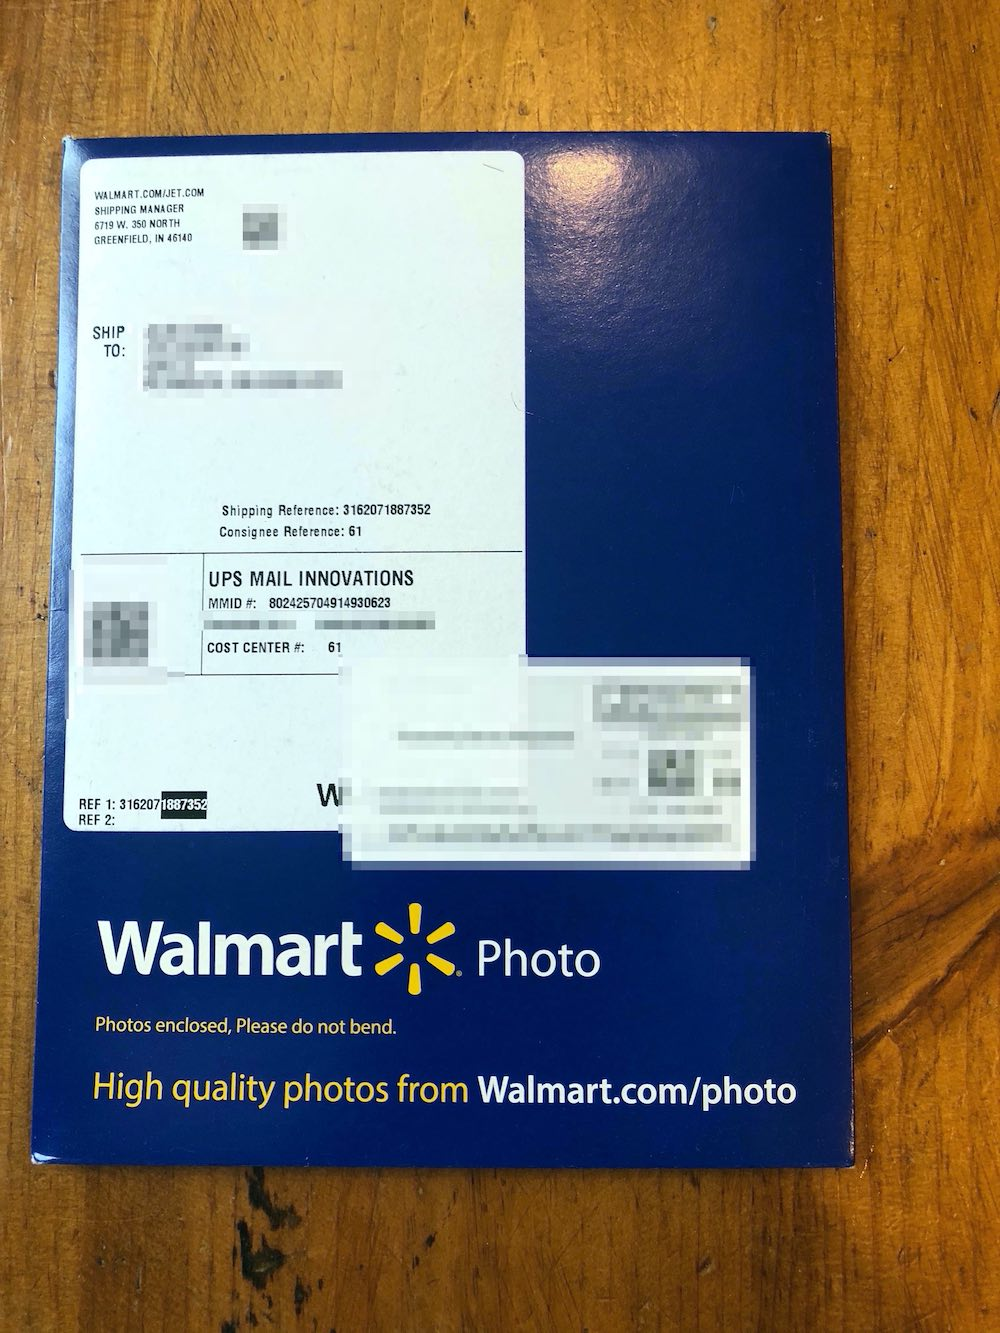 "Navy blue envelope with white mailing sticker by UPS Mail Innovations. Return address is Walmart.com in Greeinfield, IN. Personal shipping details blurred out. On the bottom of the envelope is the Walmart Photo logo in white and yellow. Below that it reads ""Photos enclosed, Please do not bend,"" and then ""High quality photos from Walmart.com/photo."" Envelope sitting on wood table top. Envelope sitting on wood table top."